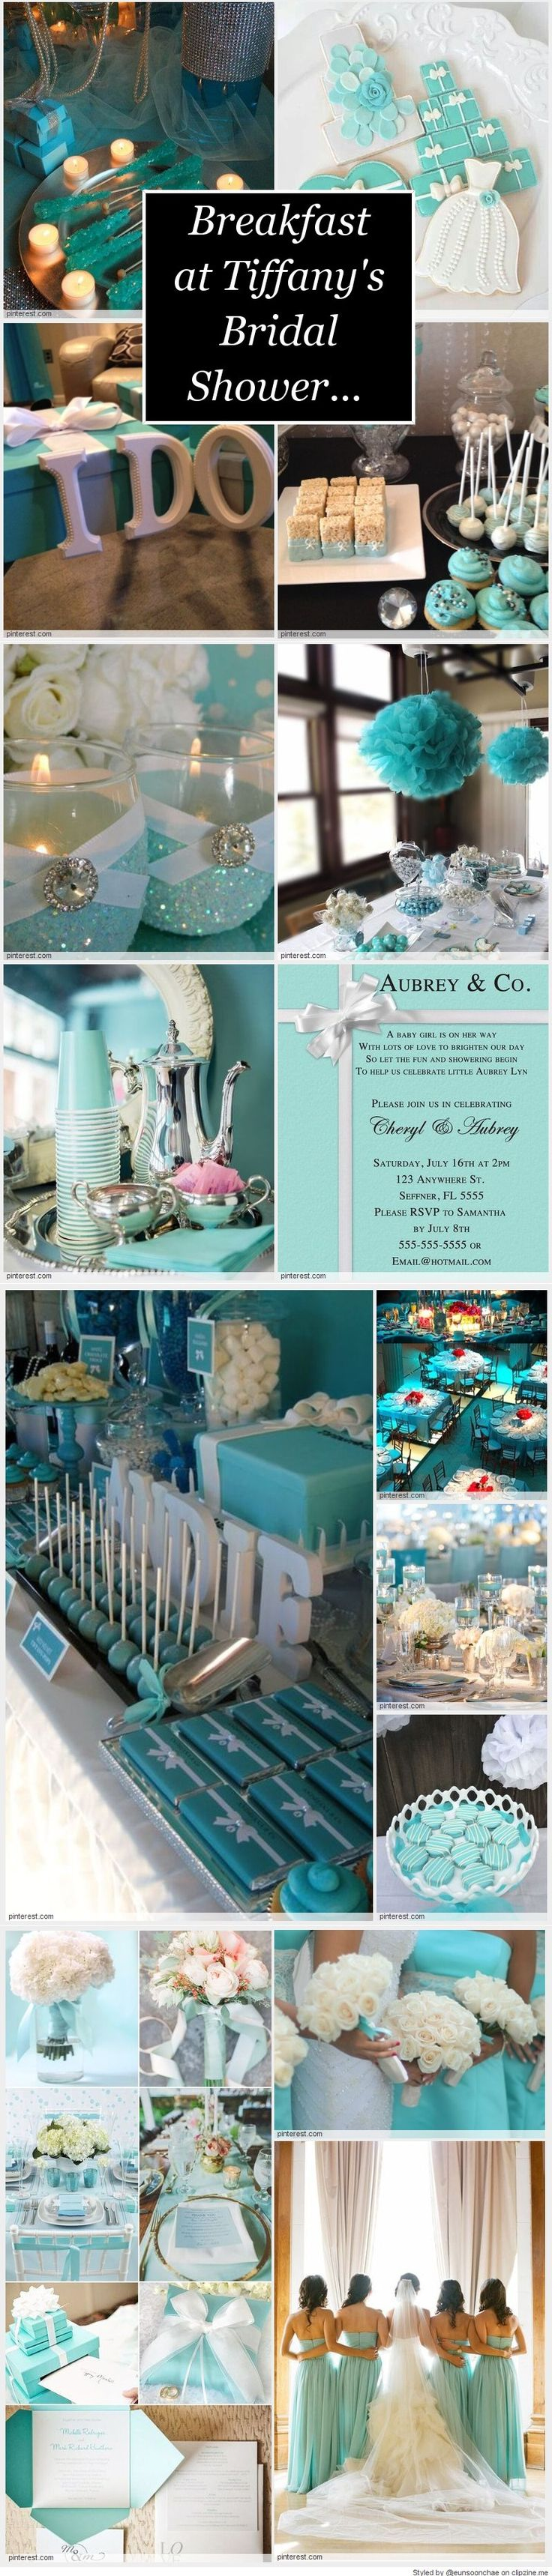 Breakfast at Tiffany's Bridal Shower                                                                                                                                                                                 More